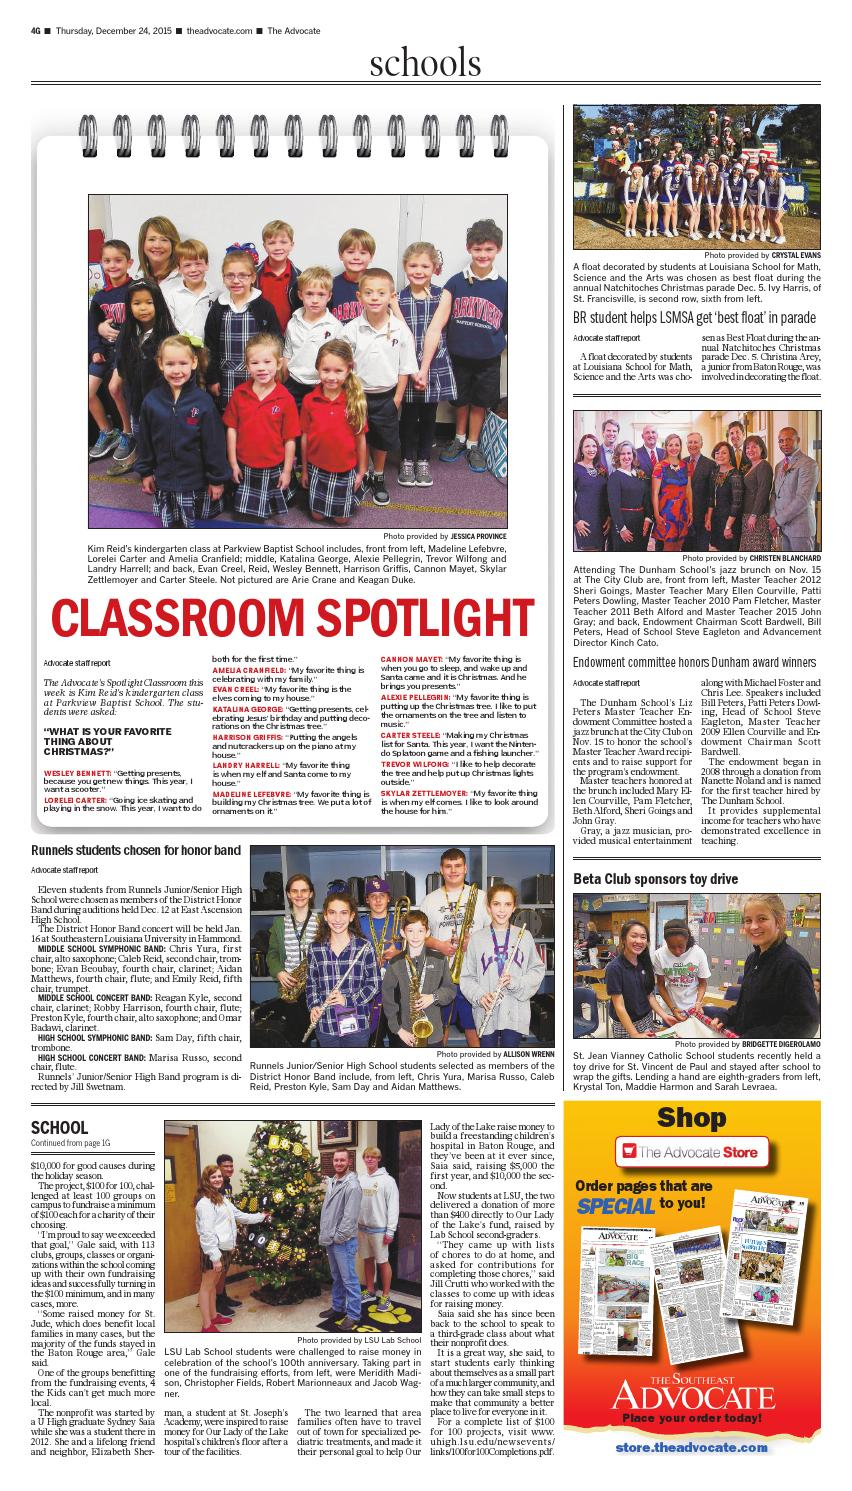 The Southeast Advocate 12-24-2015 by The Advocate - issuu